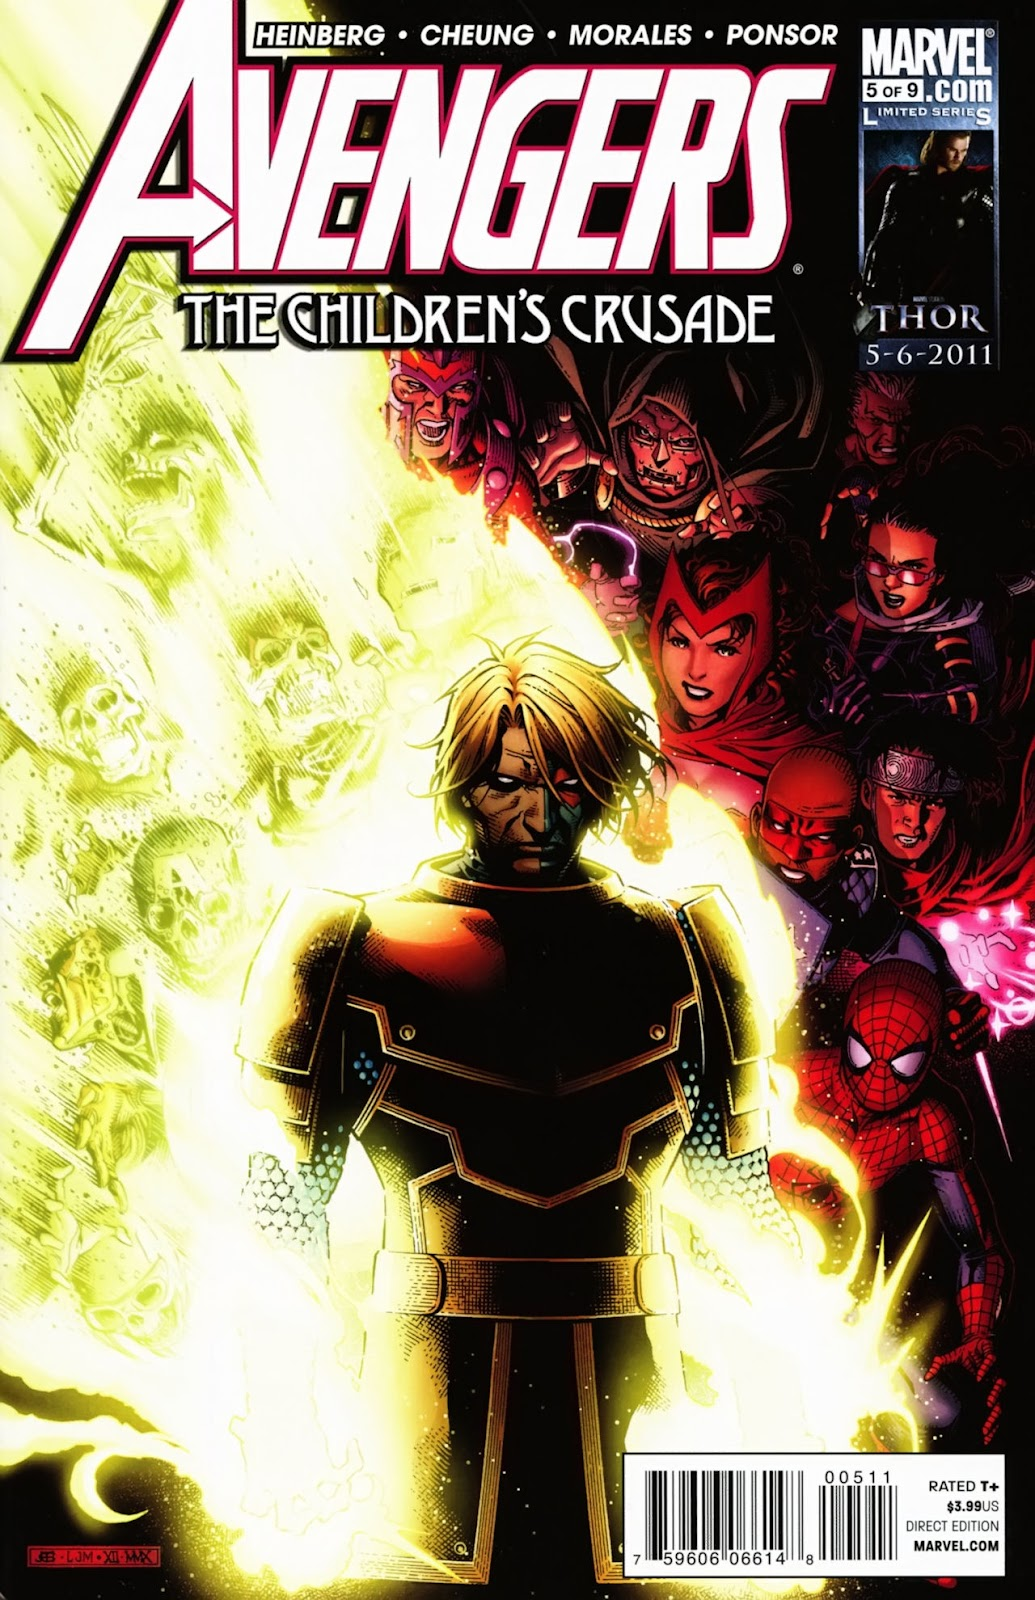 Avengers - The Childrens Crusade (2010 - 2012) issue 5 - Page 1